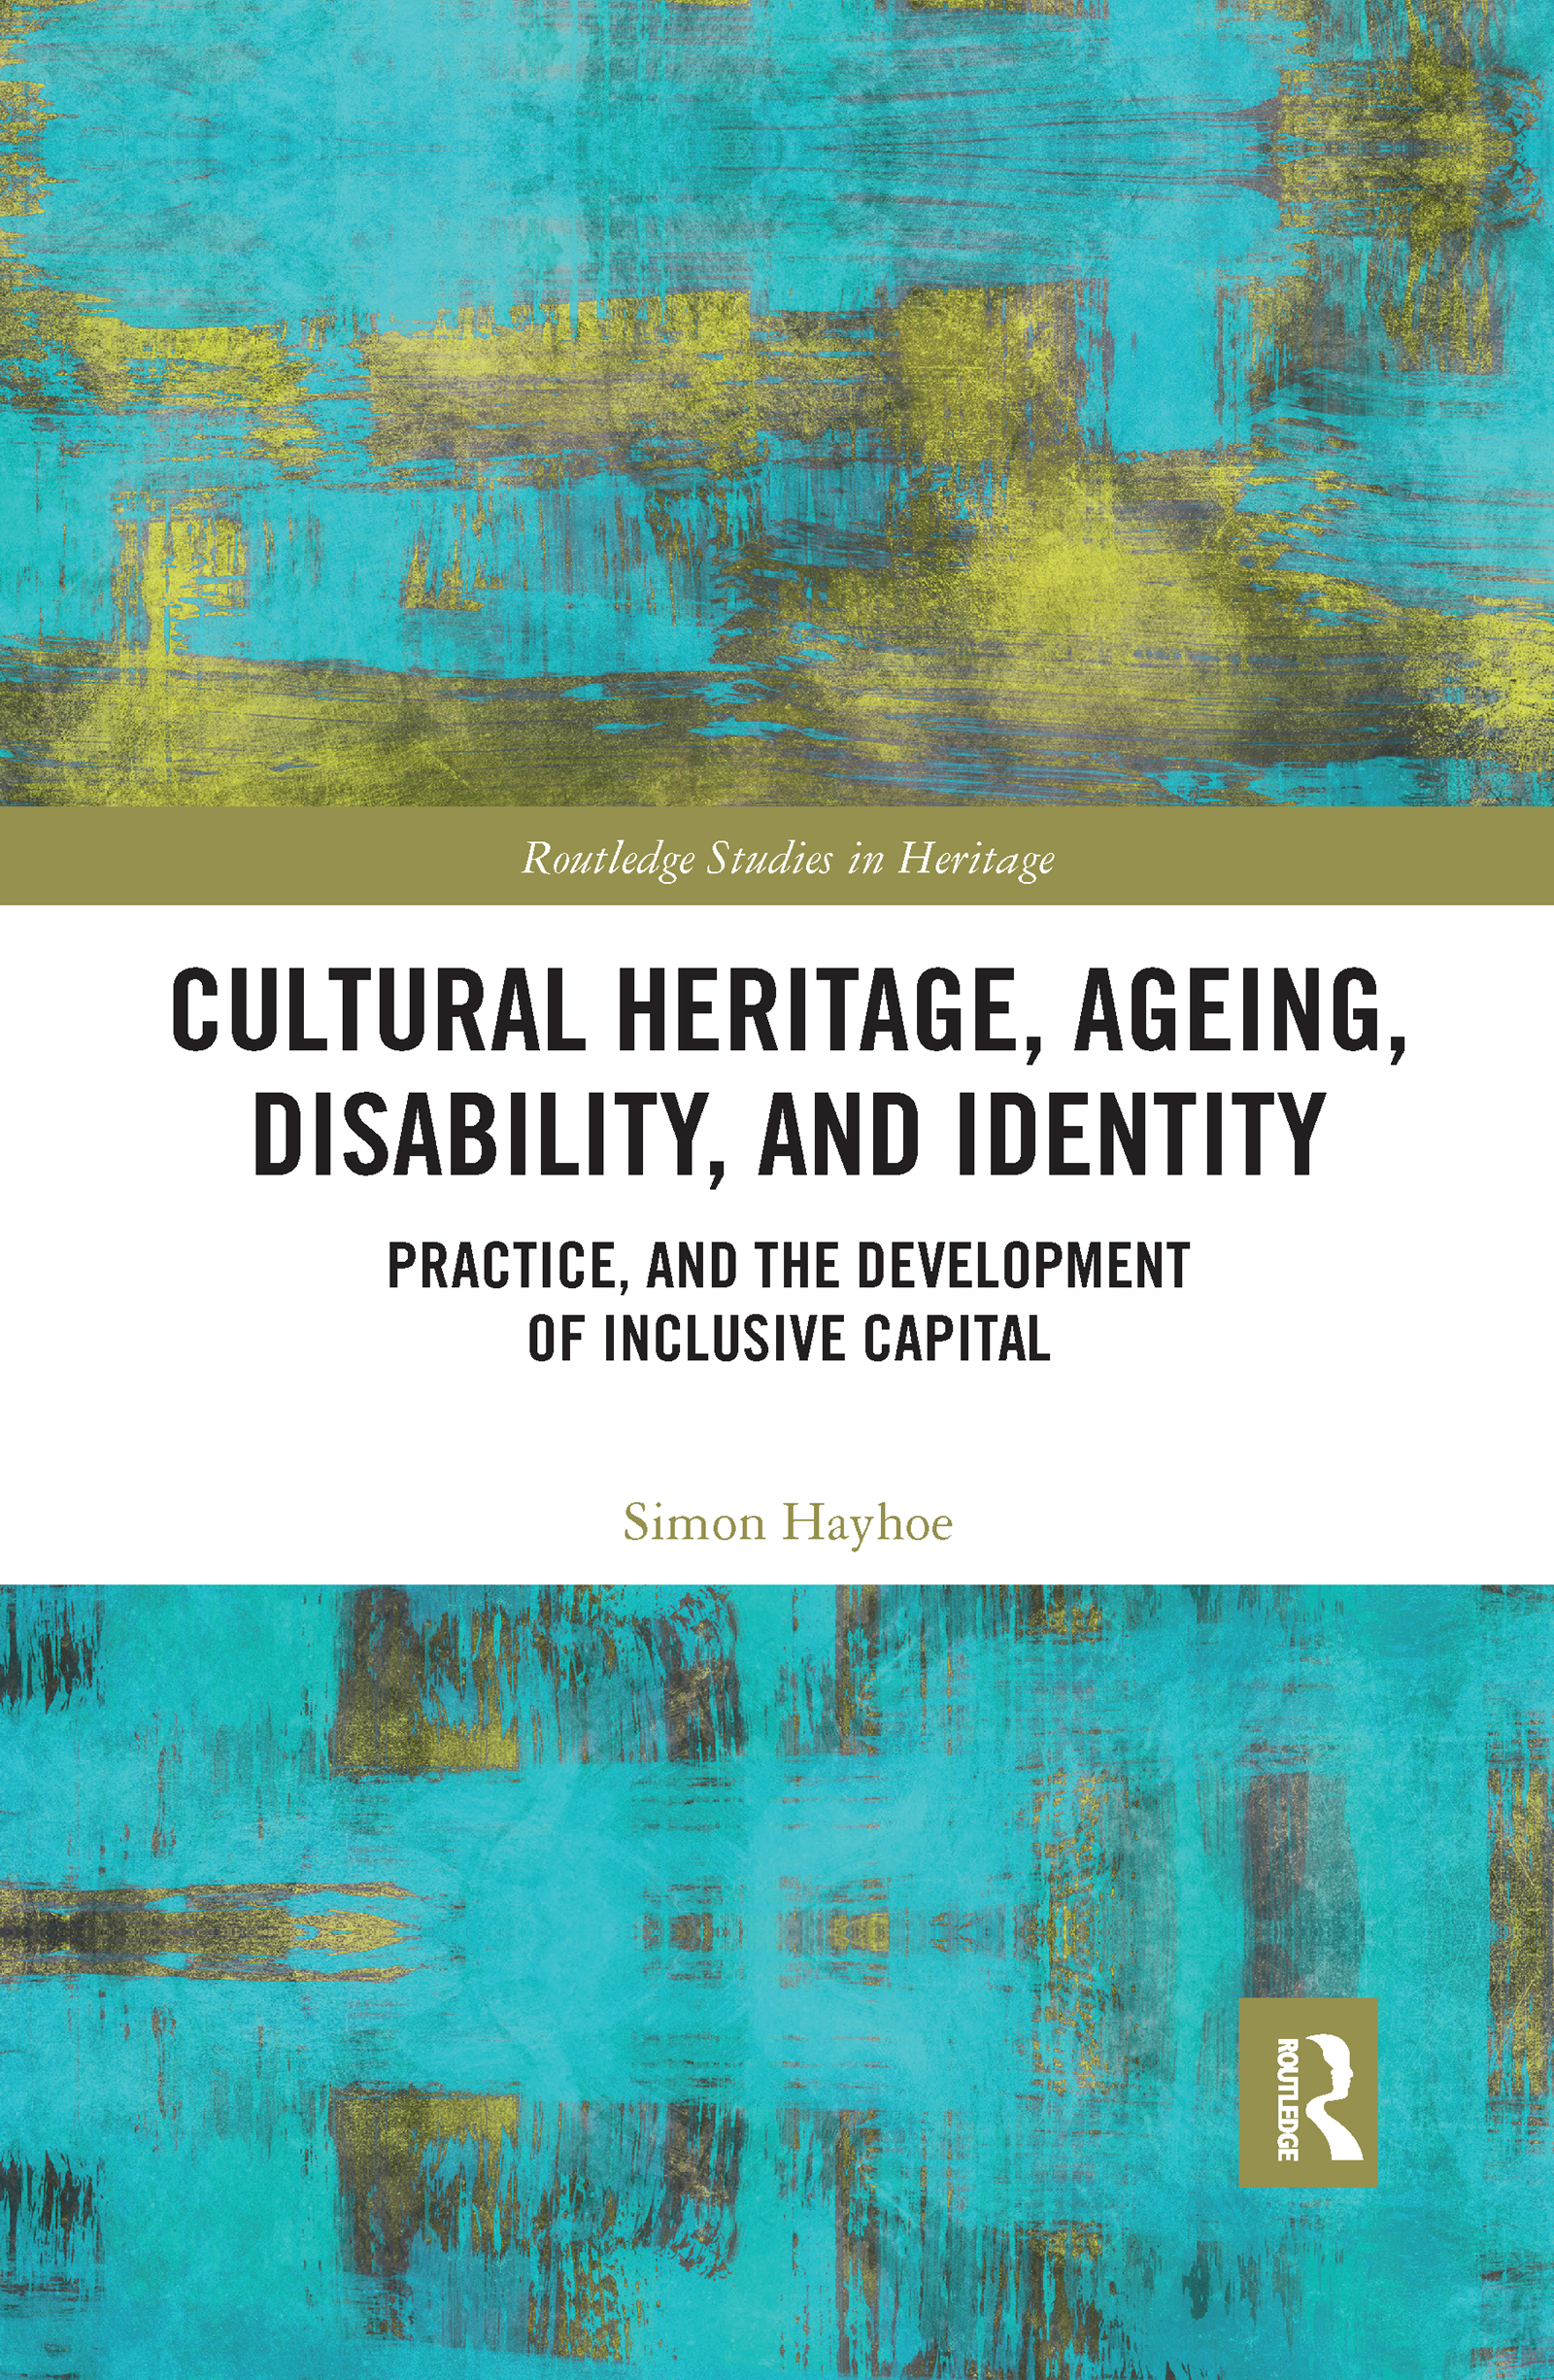 Cultural Heritage, Ageing, Disability, and Identity